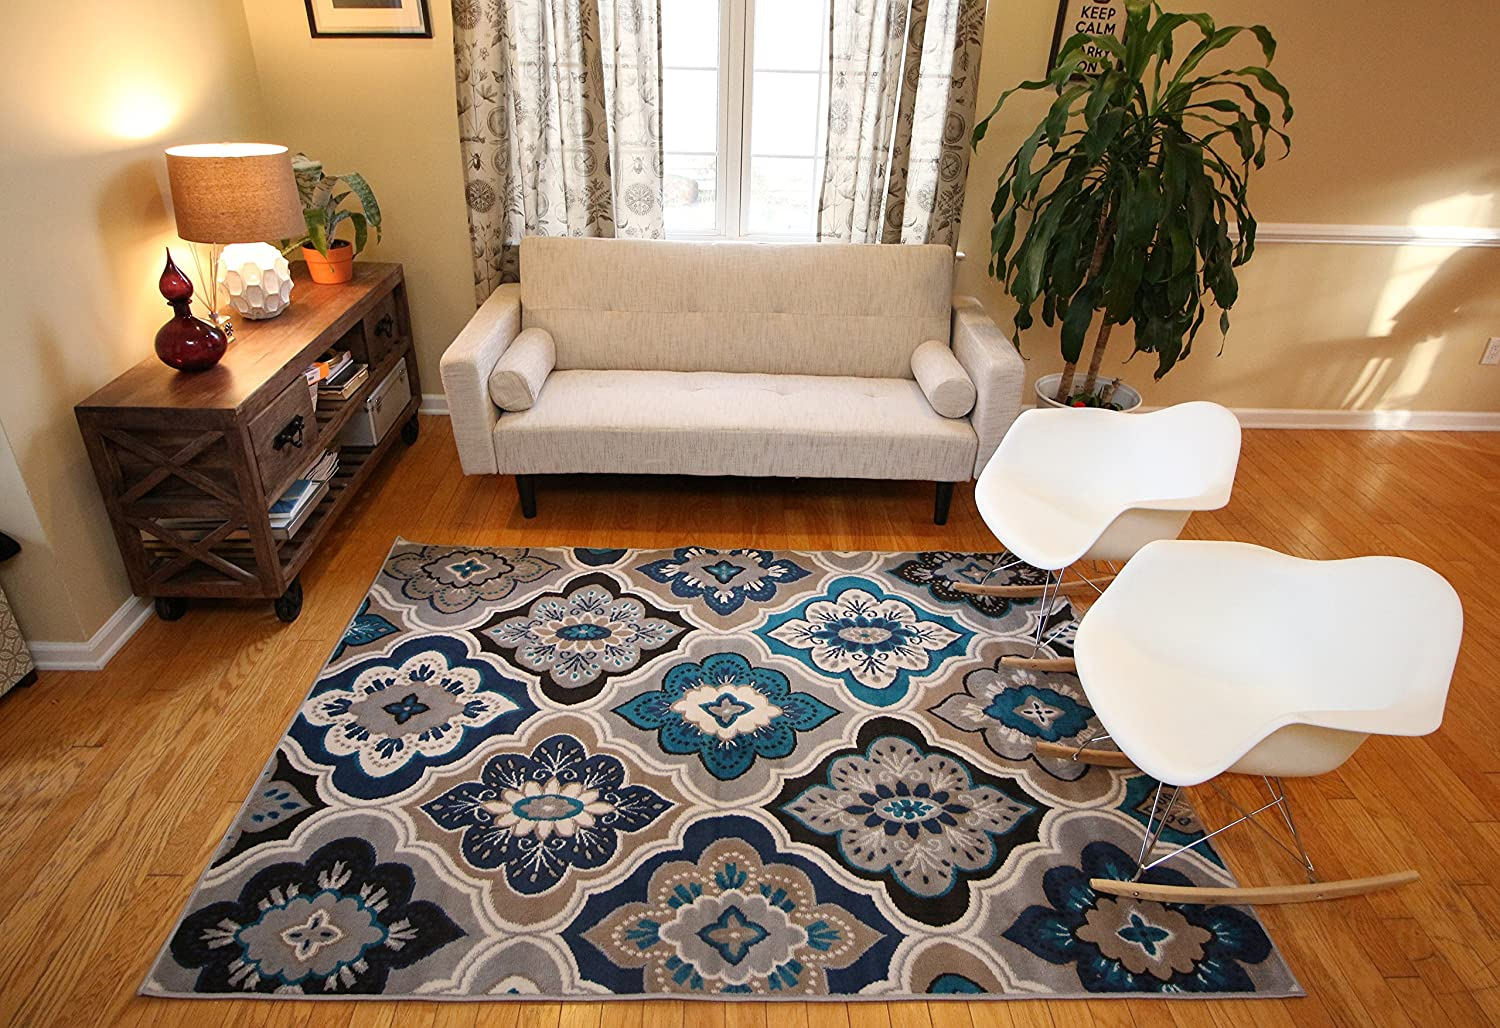 100 blue grey brown area rug area rug trend round area rugs